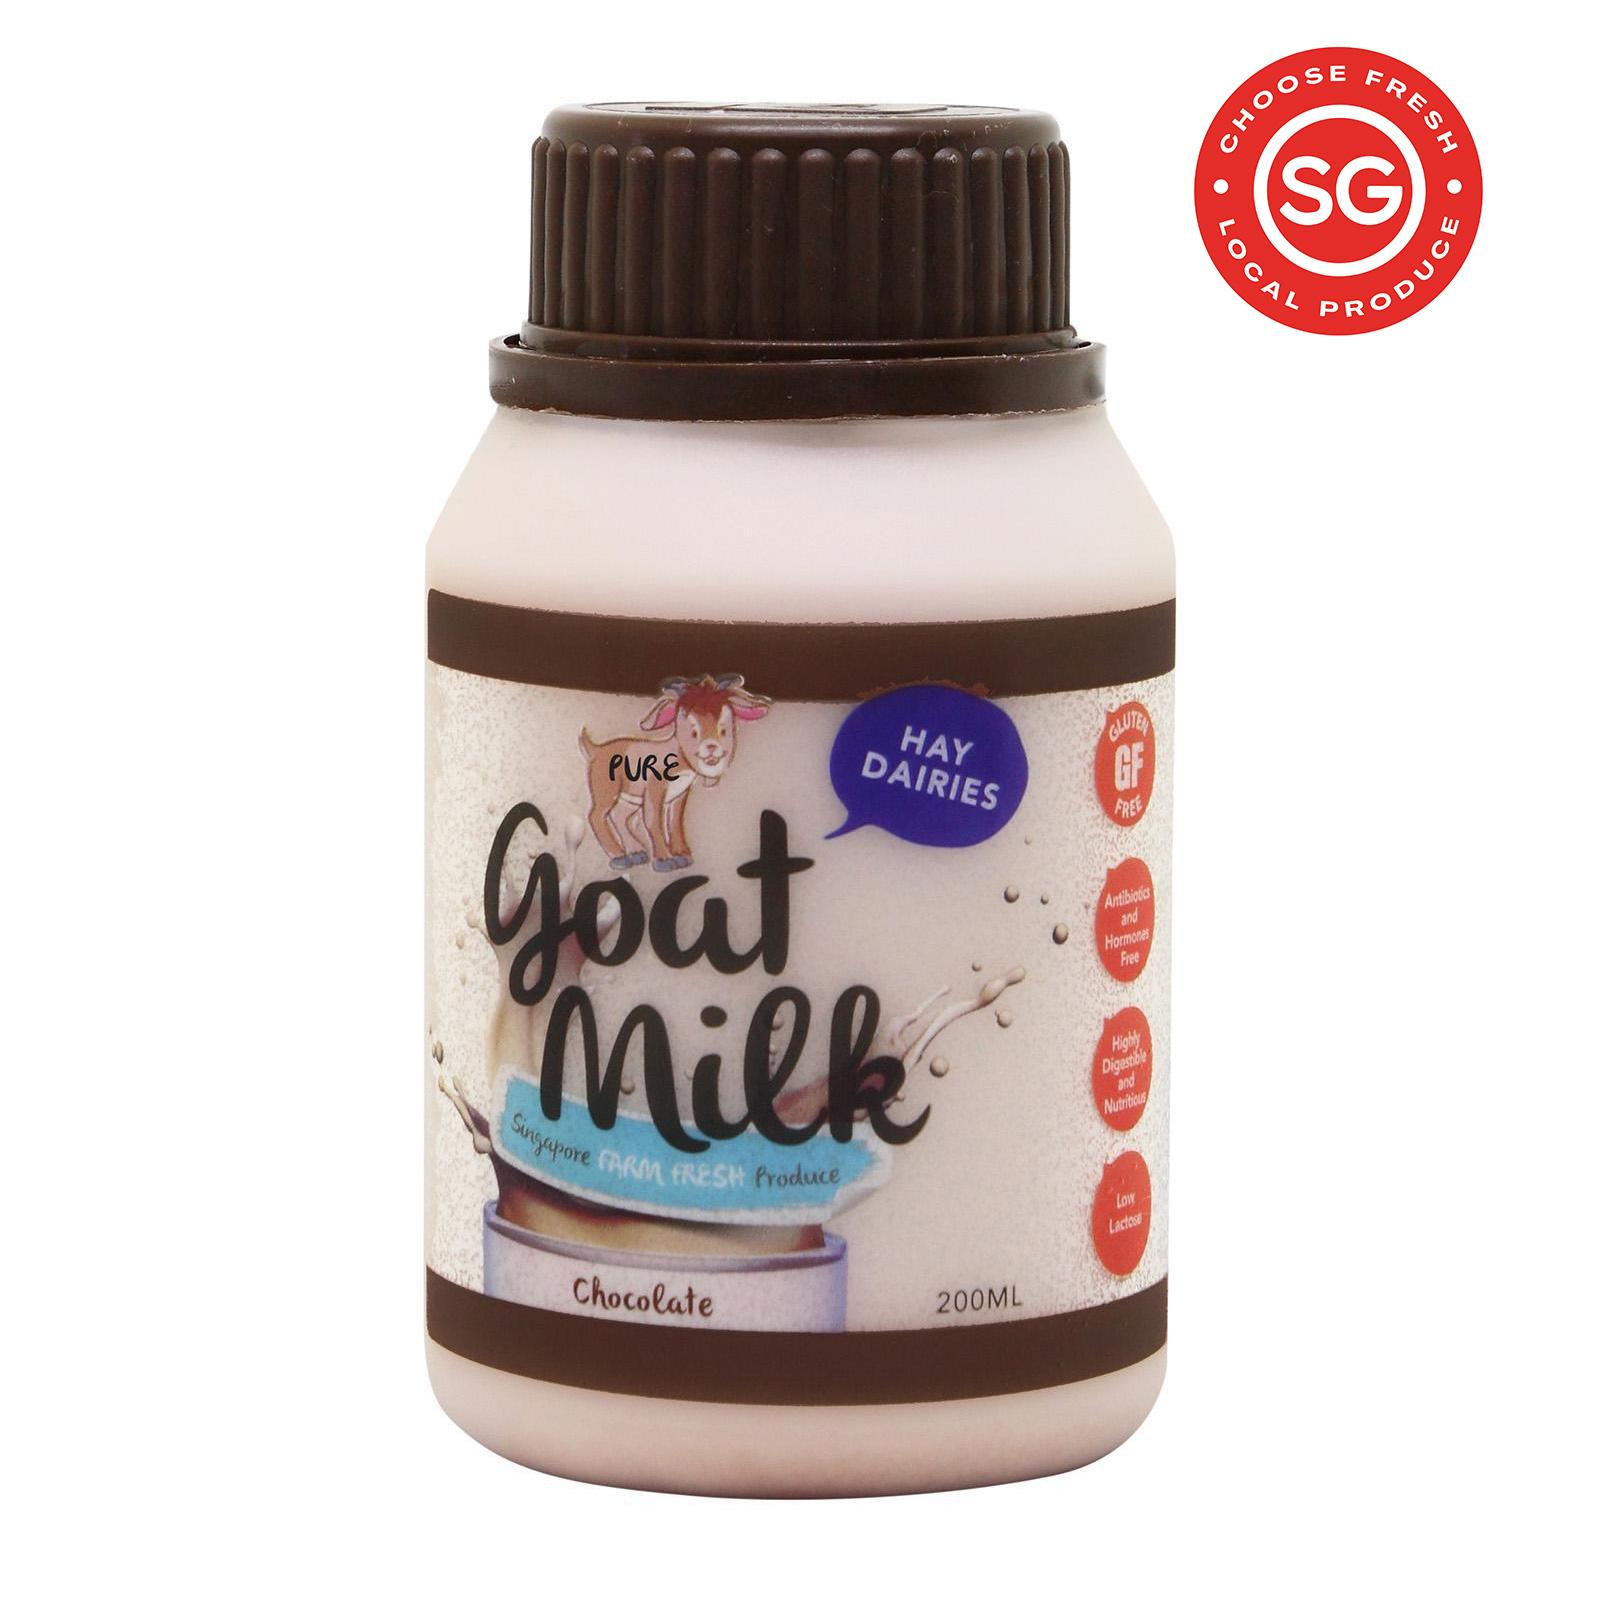 Hay Dairies Goat Milk Chocolate 200ml